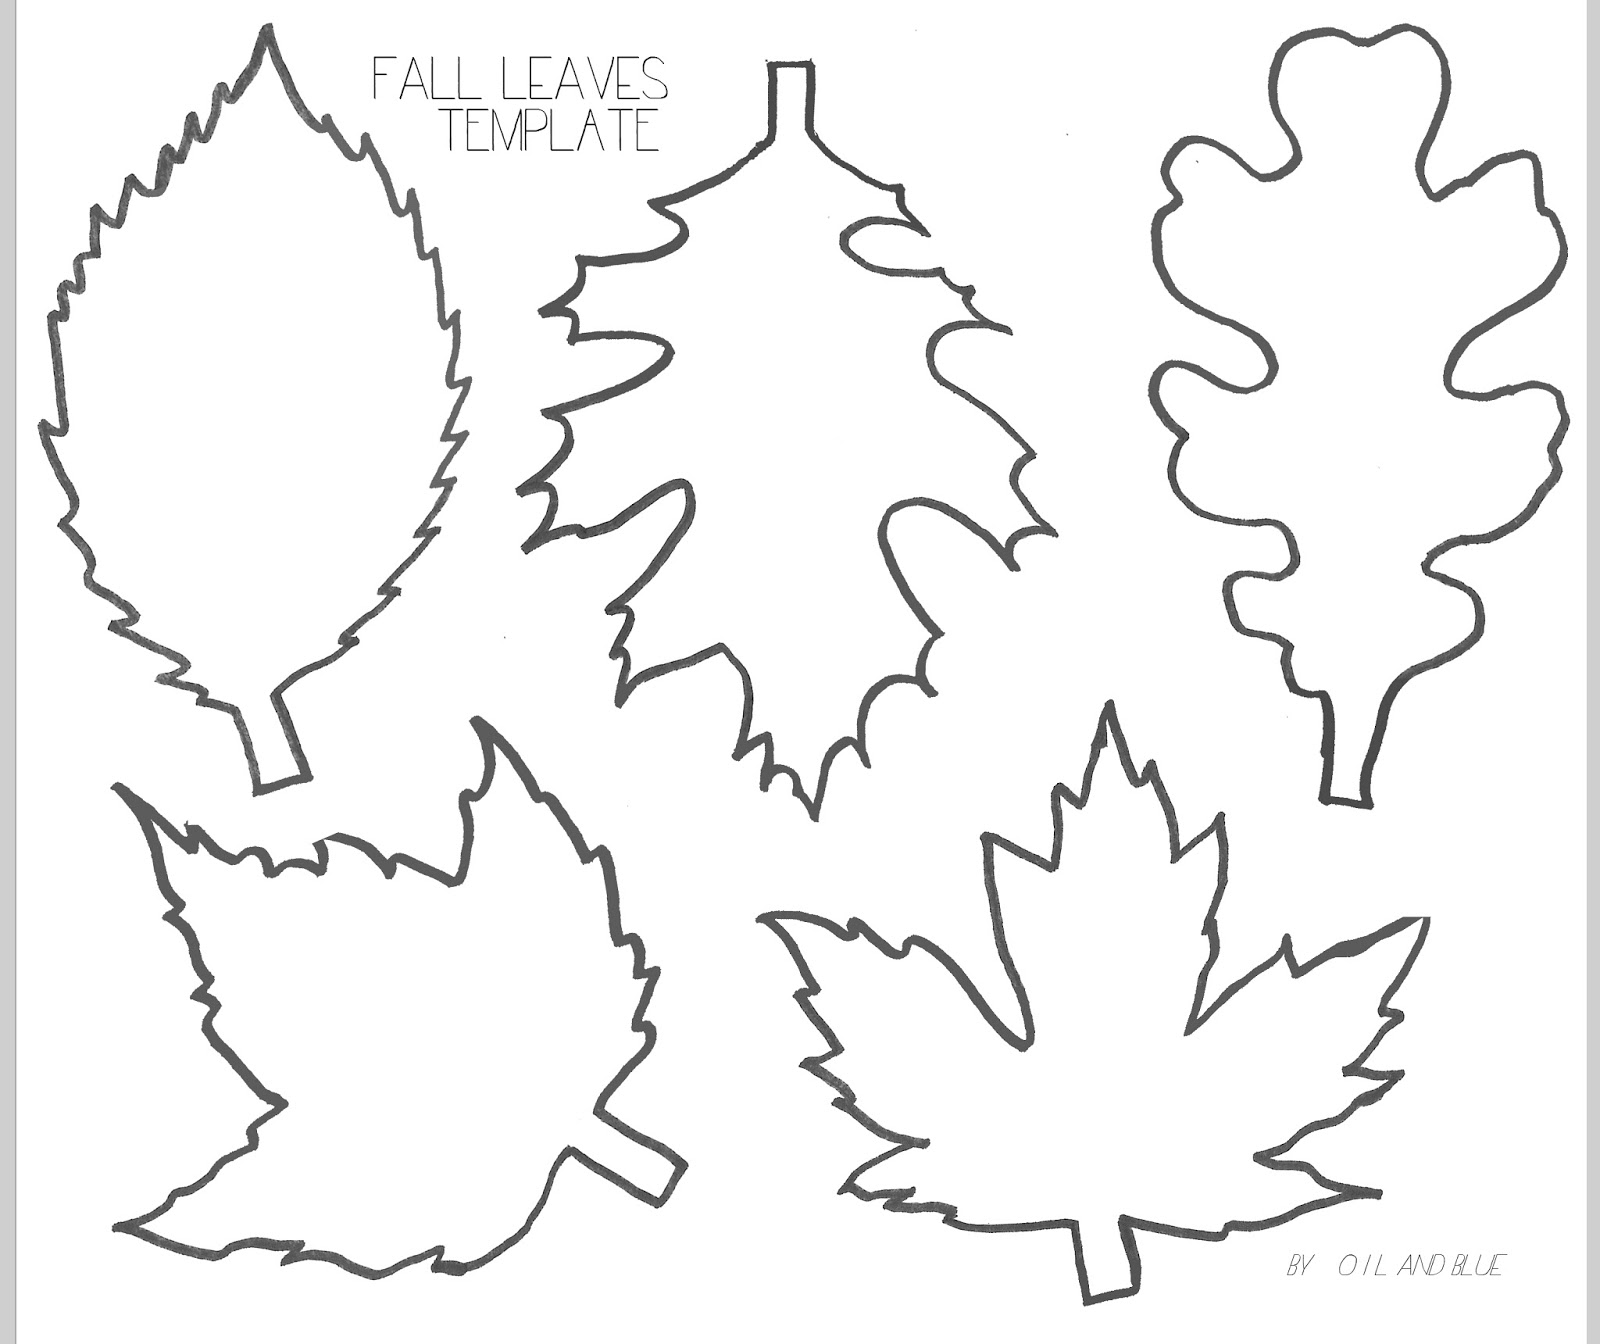 Template for leaves hatchurbanskript template for leaves leaf template printable agi mapeadosencolombia co template for leaves leaves printable pronofoot35fo Image collections